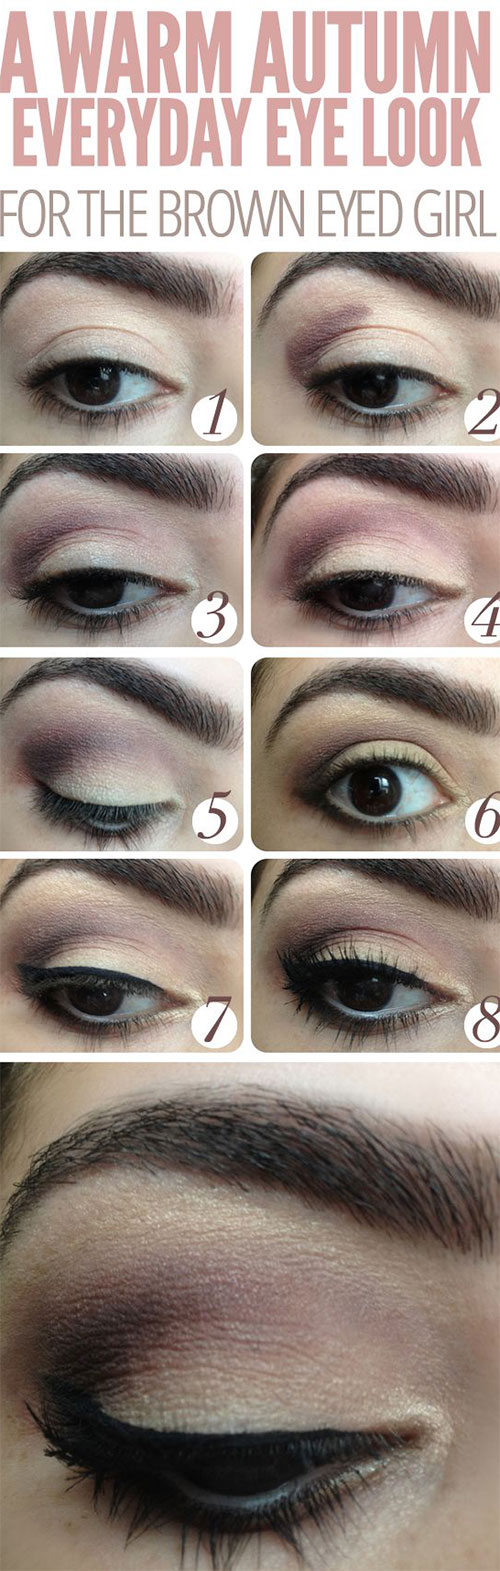 12-Easy-Simple-Fall-Makeup-Tutorials-For-Beginners-Learners-2015-9